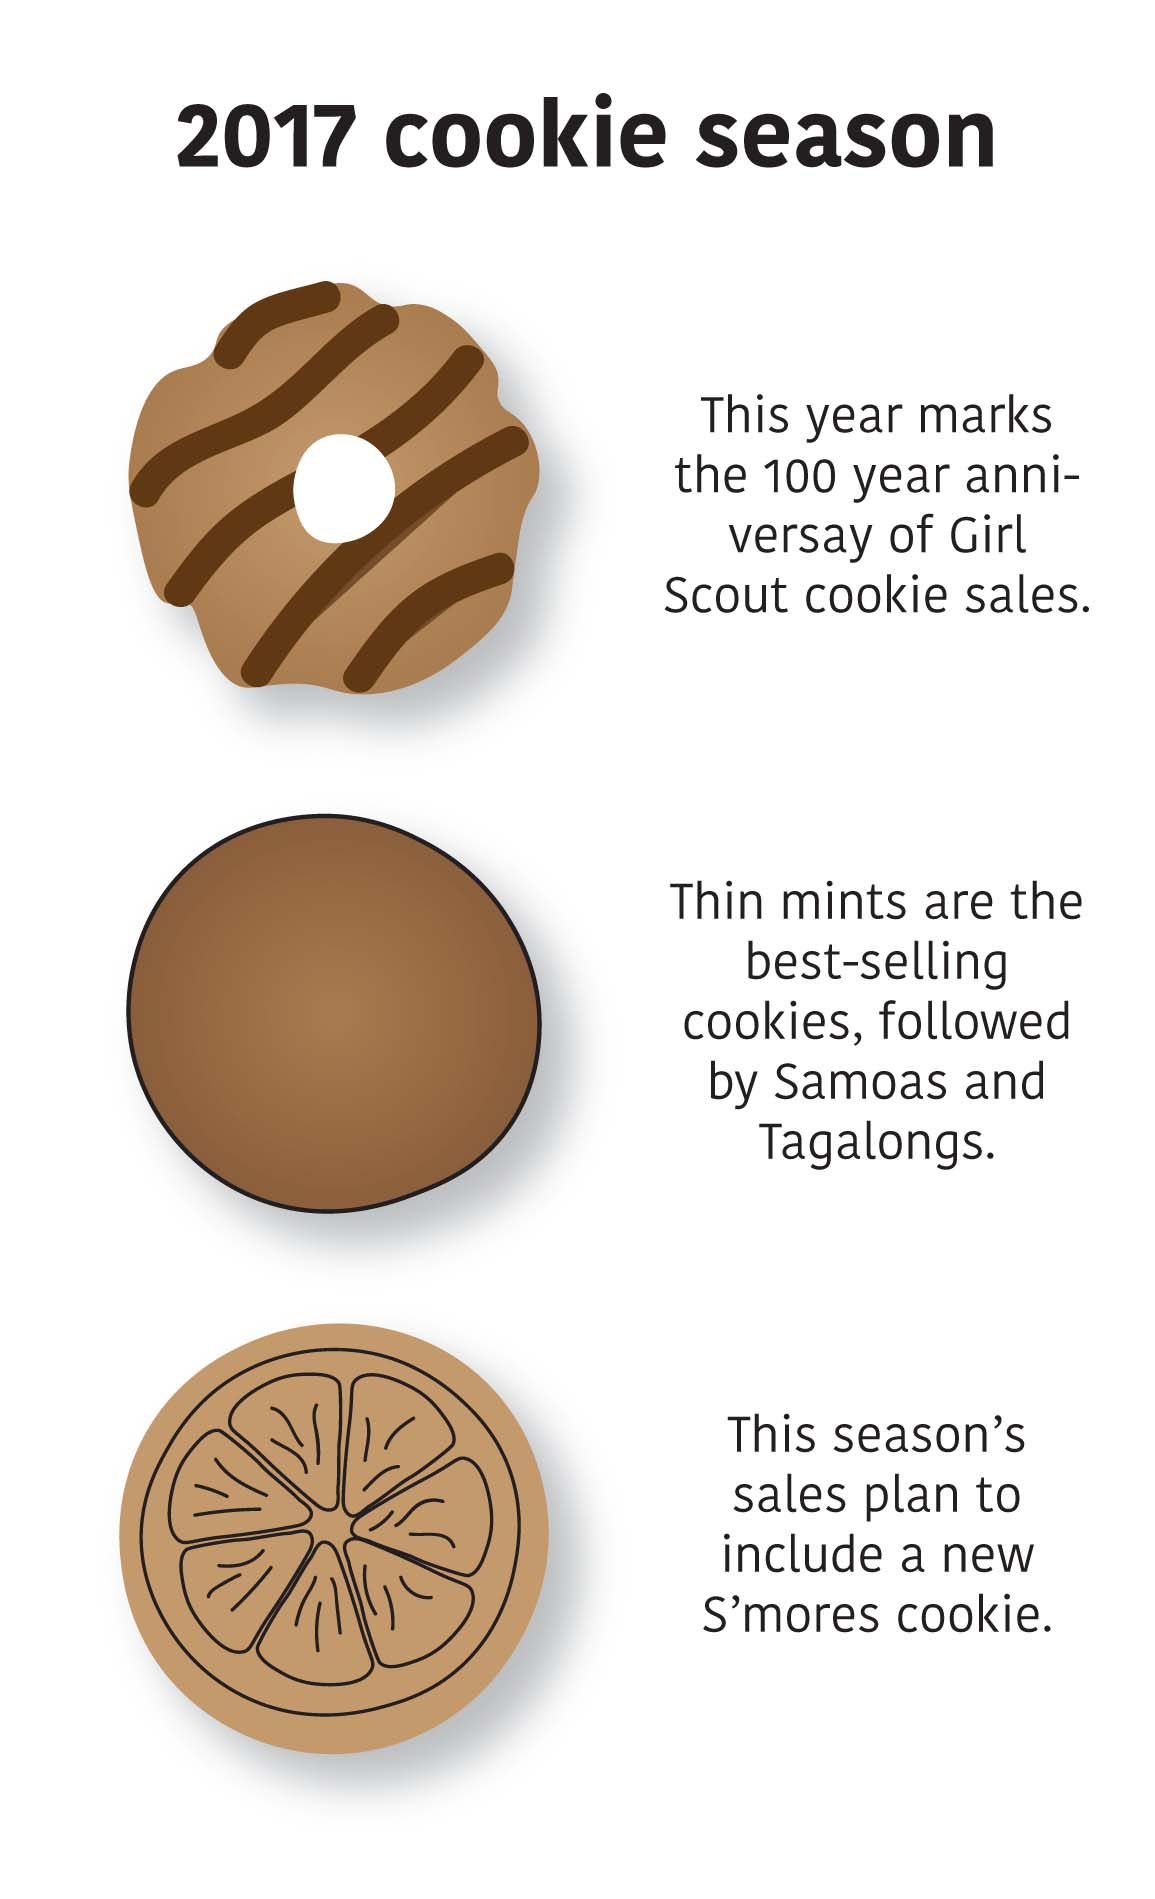 Source: Girl Scouts